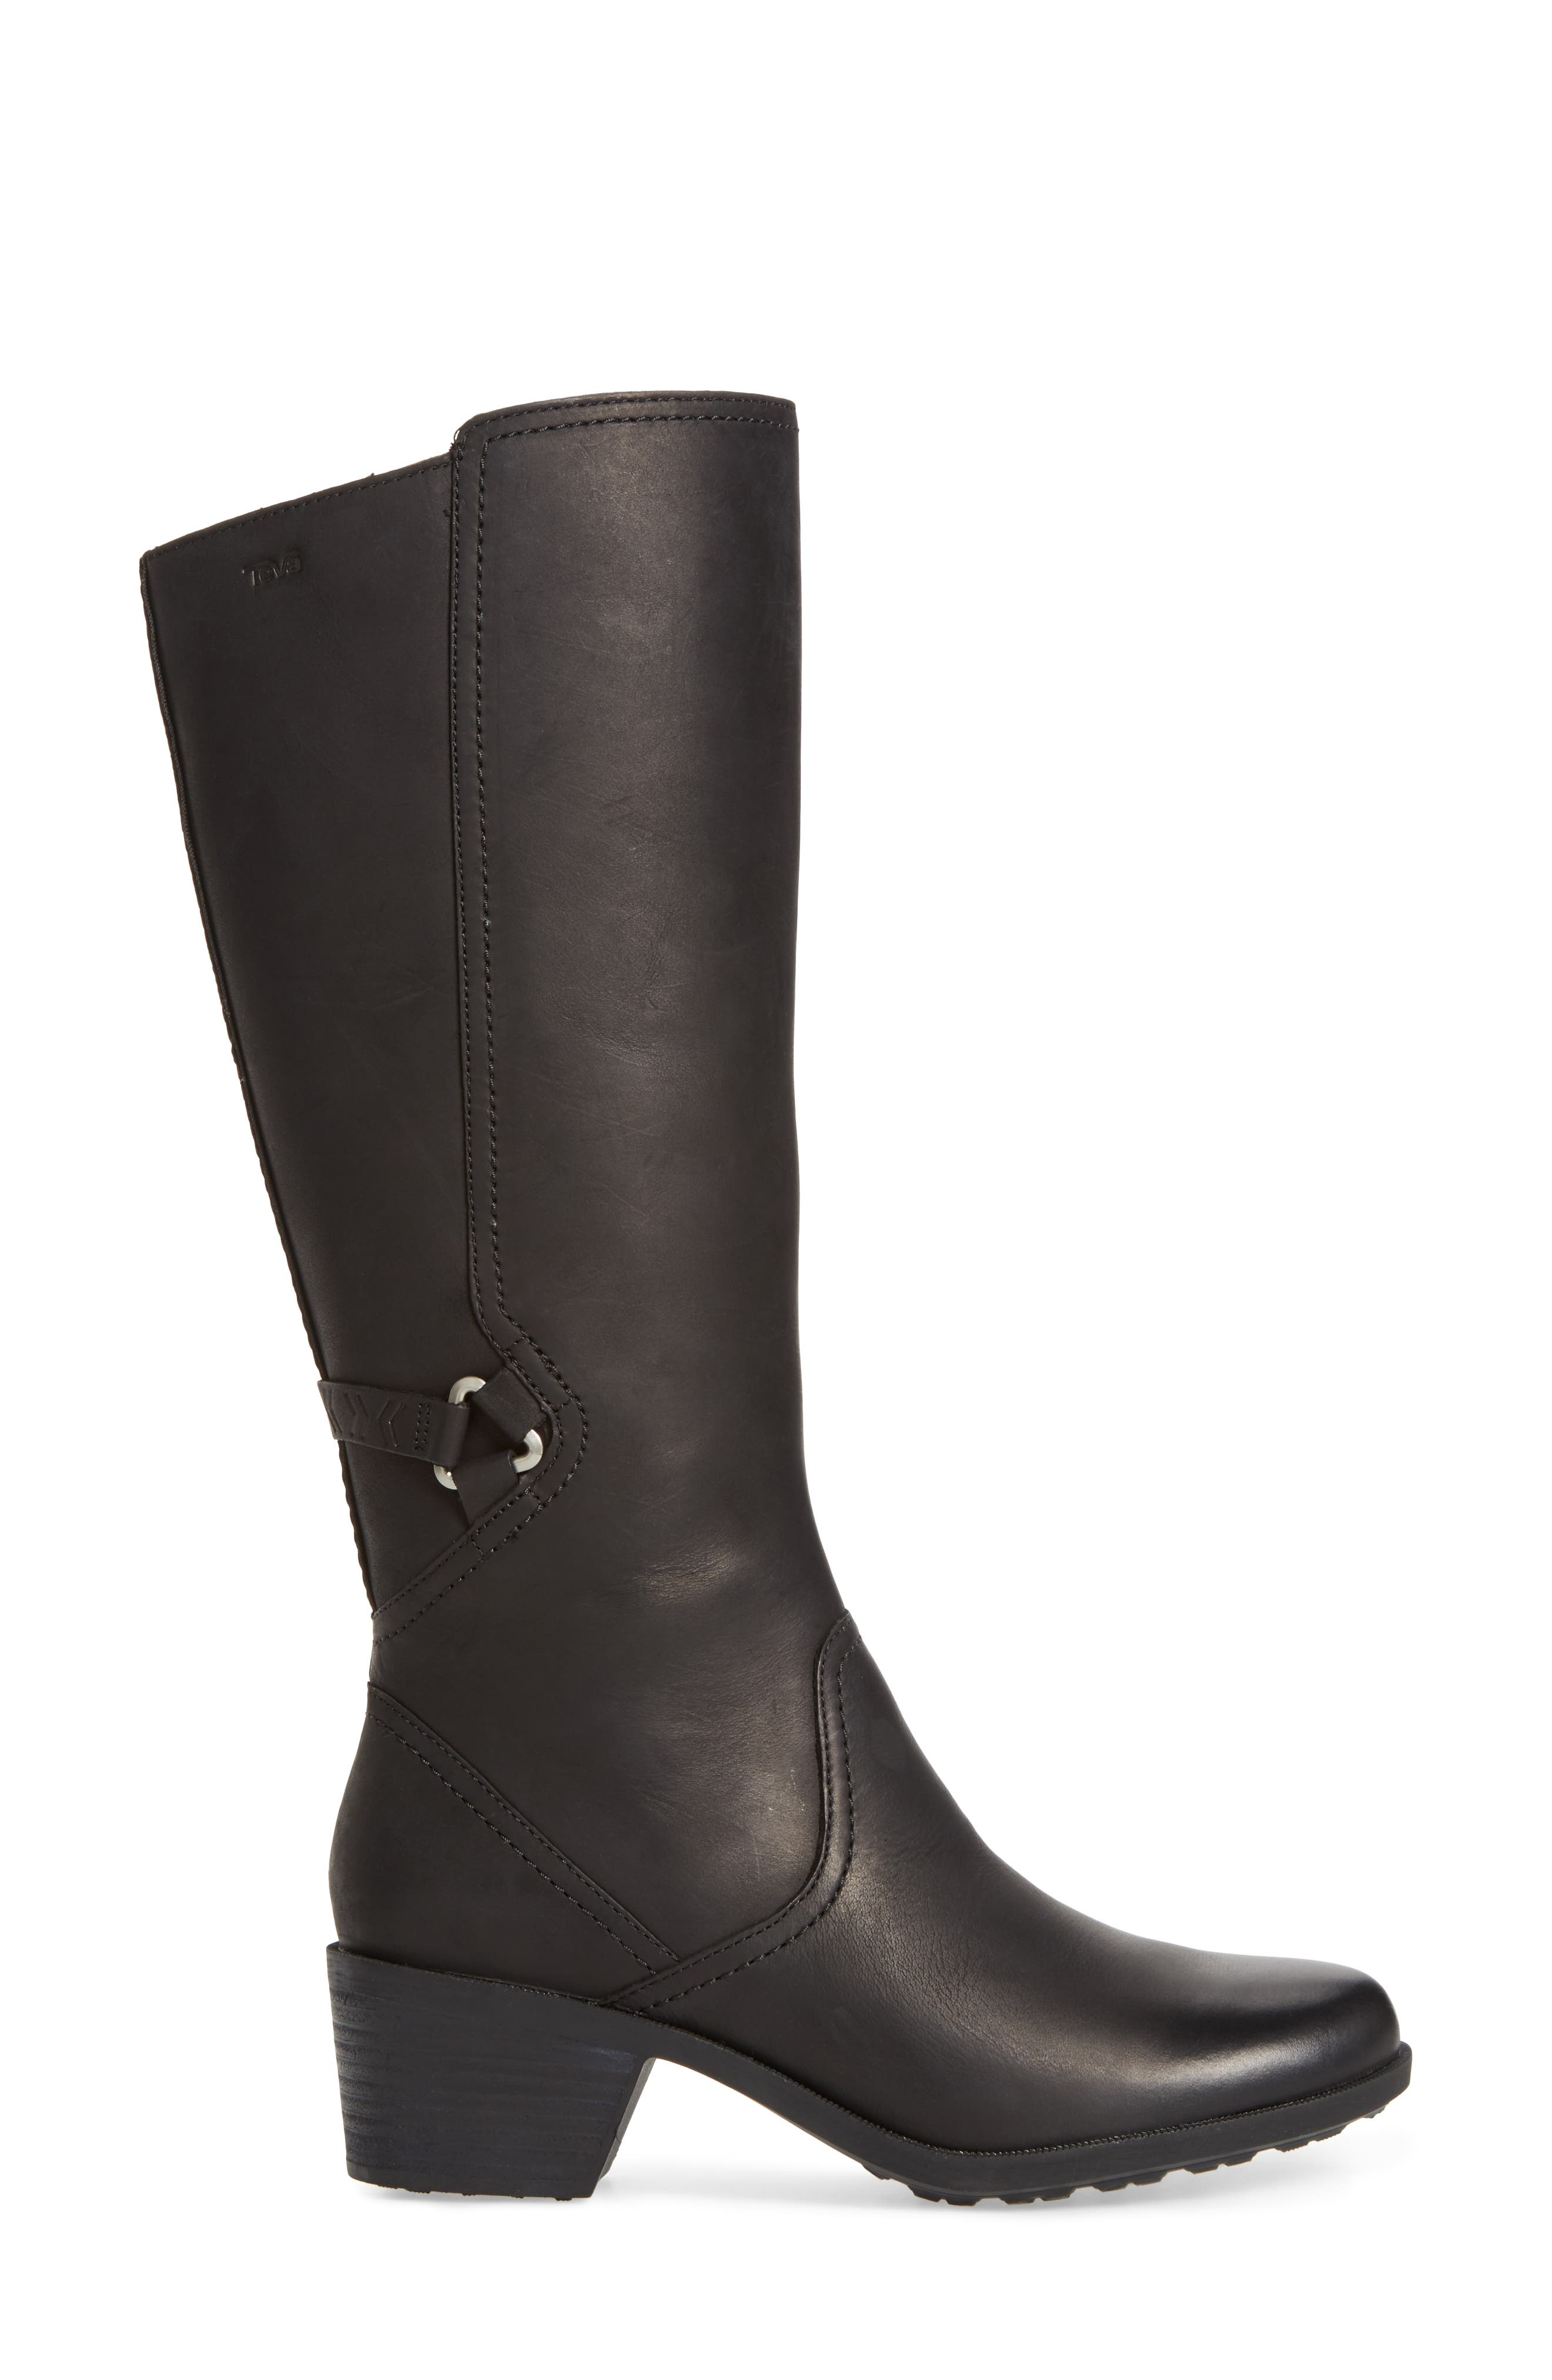 Foxy Waterproof Boot,                             Alternate thumbnail 3, color,                             Black Leather